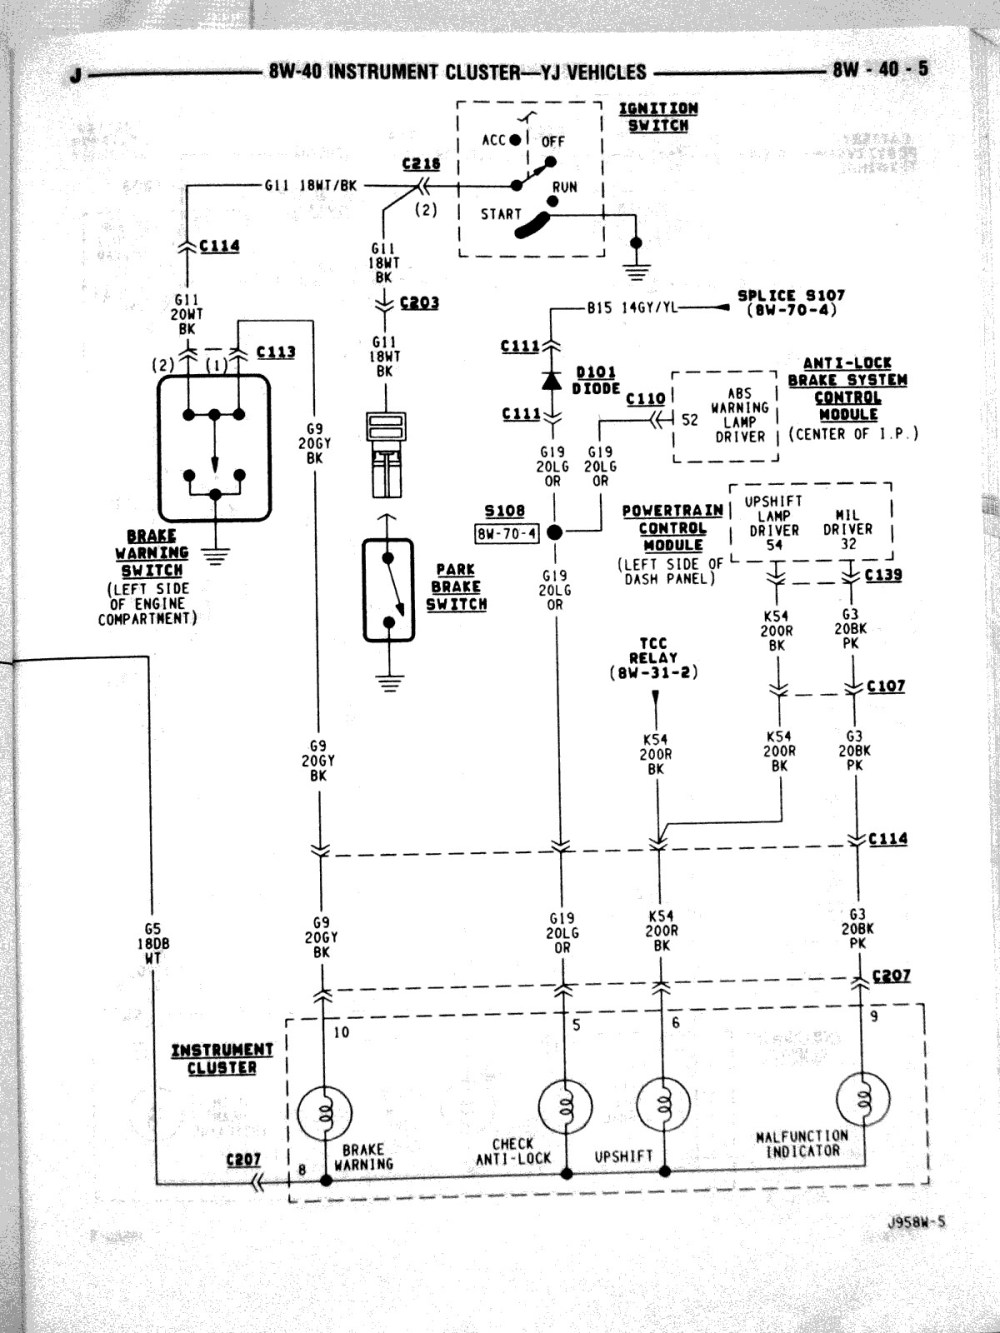 medium resolution of 1992 jeep yj fuse diagram wiring diagram world 92 jeep wrangler wiring diagram 1992 jeep yj fuse diagram